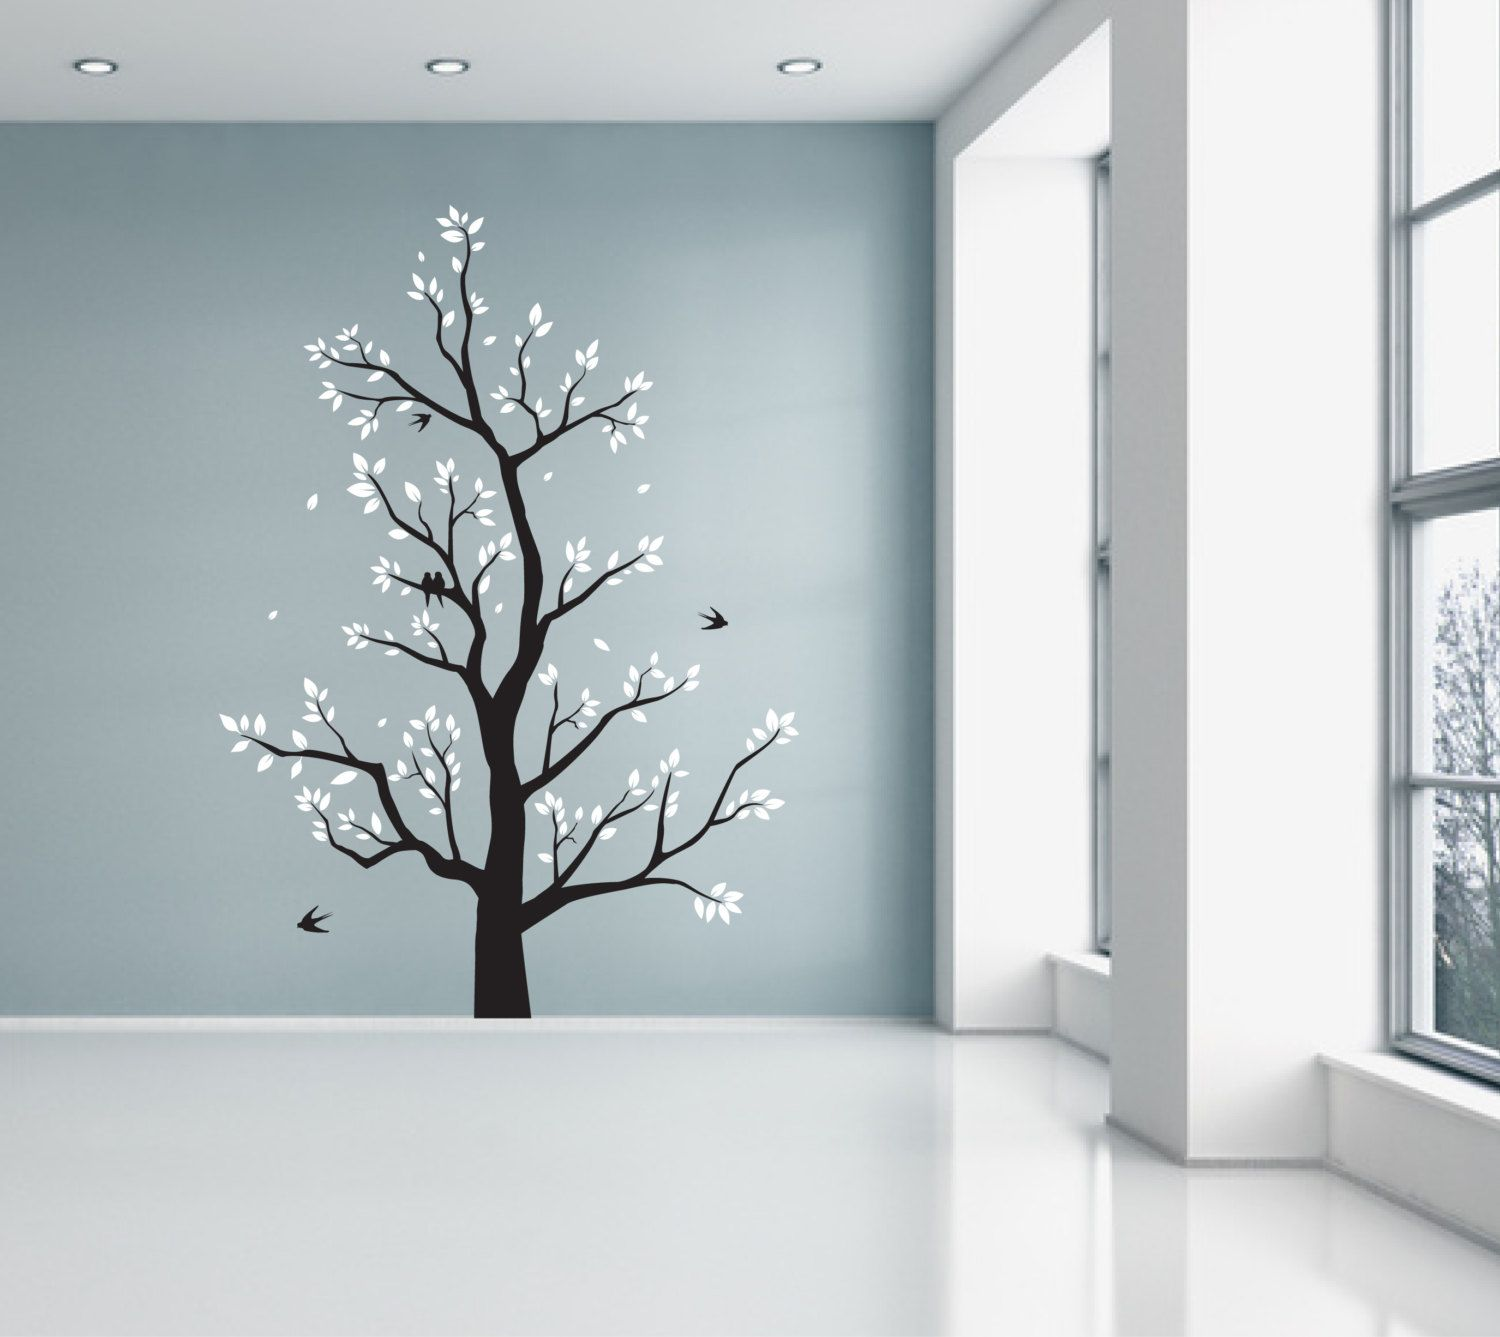 Large tree wall sticker with leaves branches flying birds large tree wall sticker with leaves branches flying birds wall decor decal wall graphic black white grey red falling leaves amipublicfo Image collections